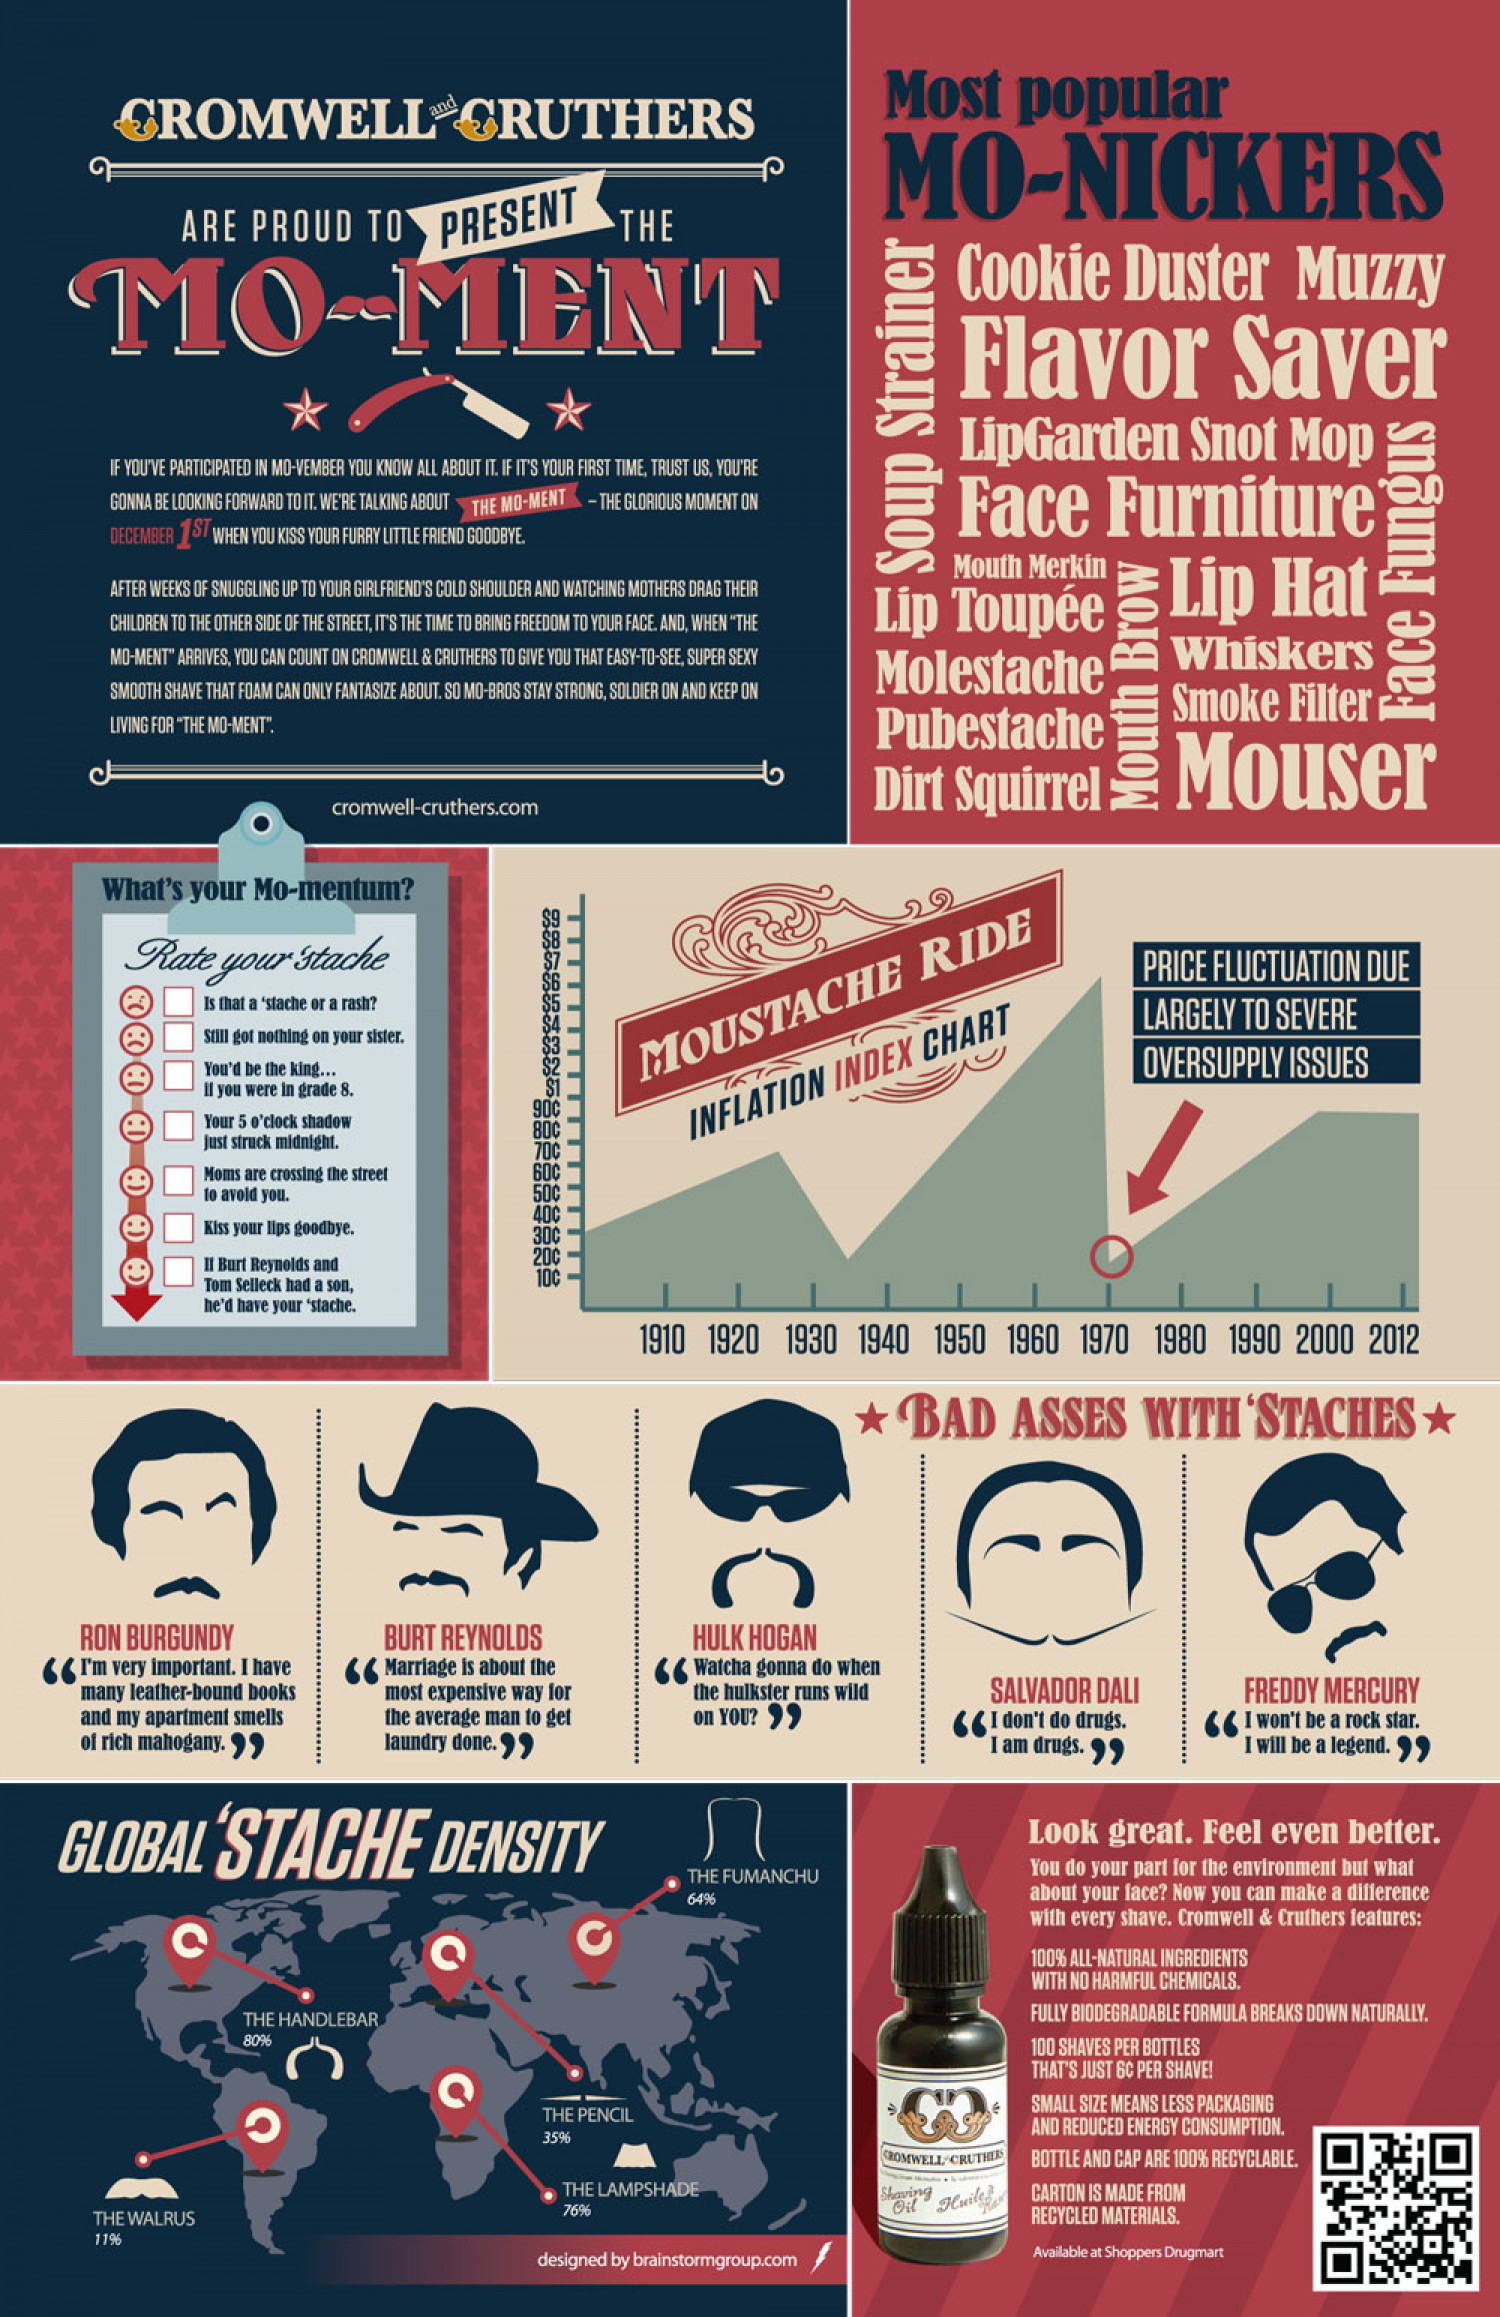 The 'Mo-Ment' by Cromwell and Cruthers Infographic